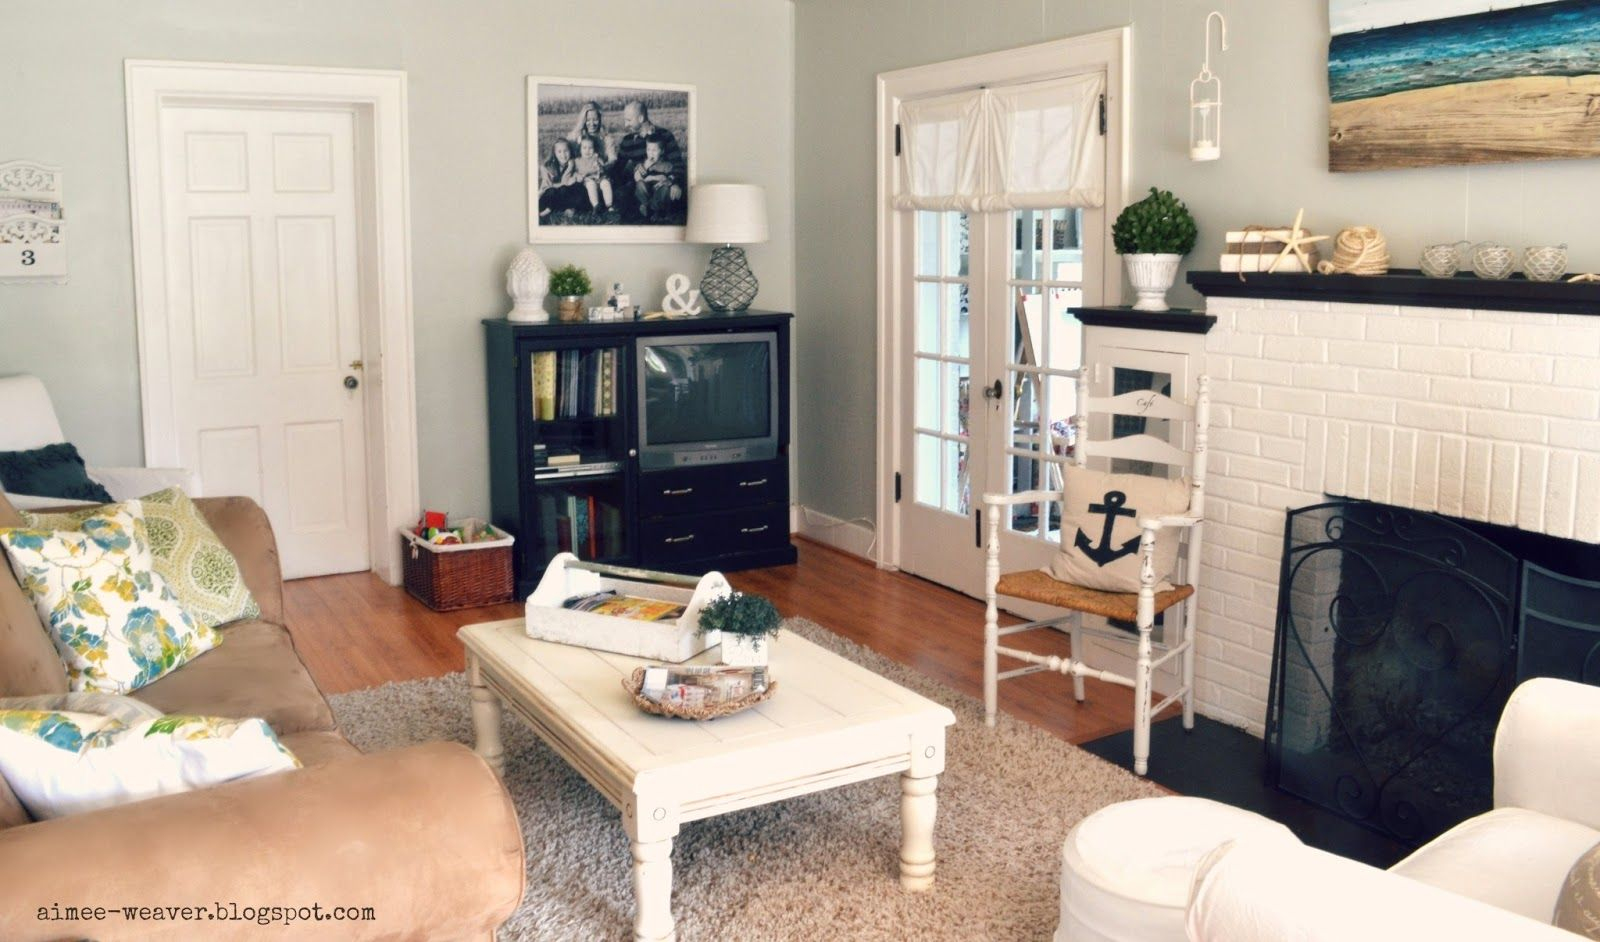 living room wall paint colors%0A I started to think about painting the family room a different color several  months ago